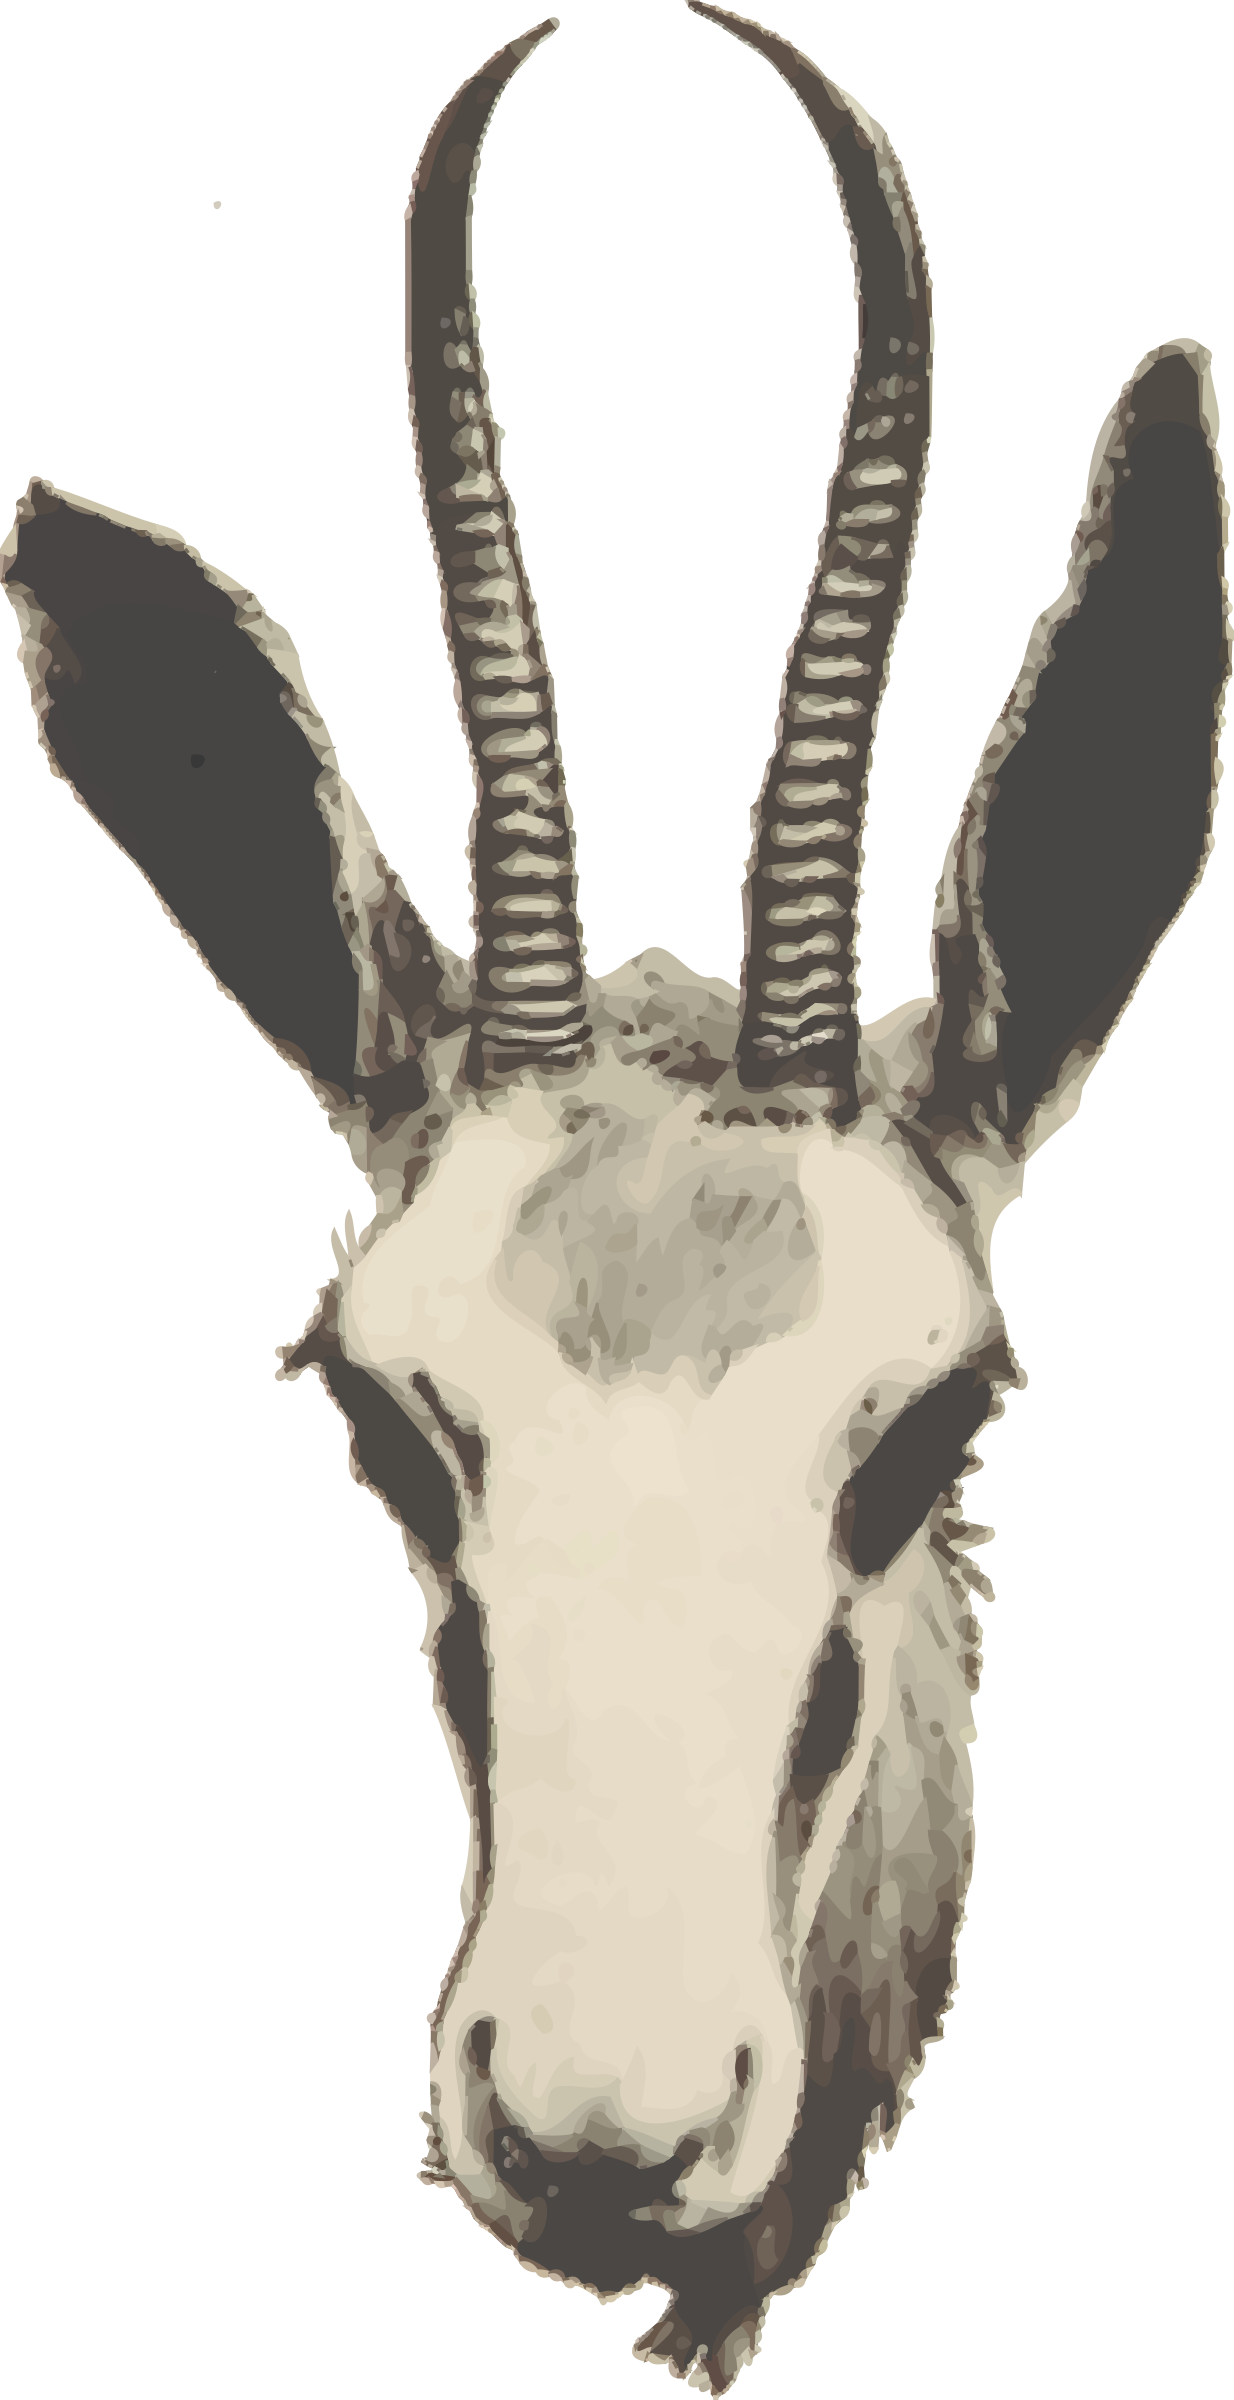 clipart springbok - photo #42